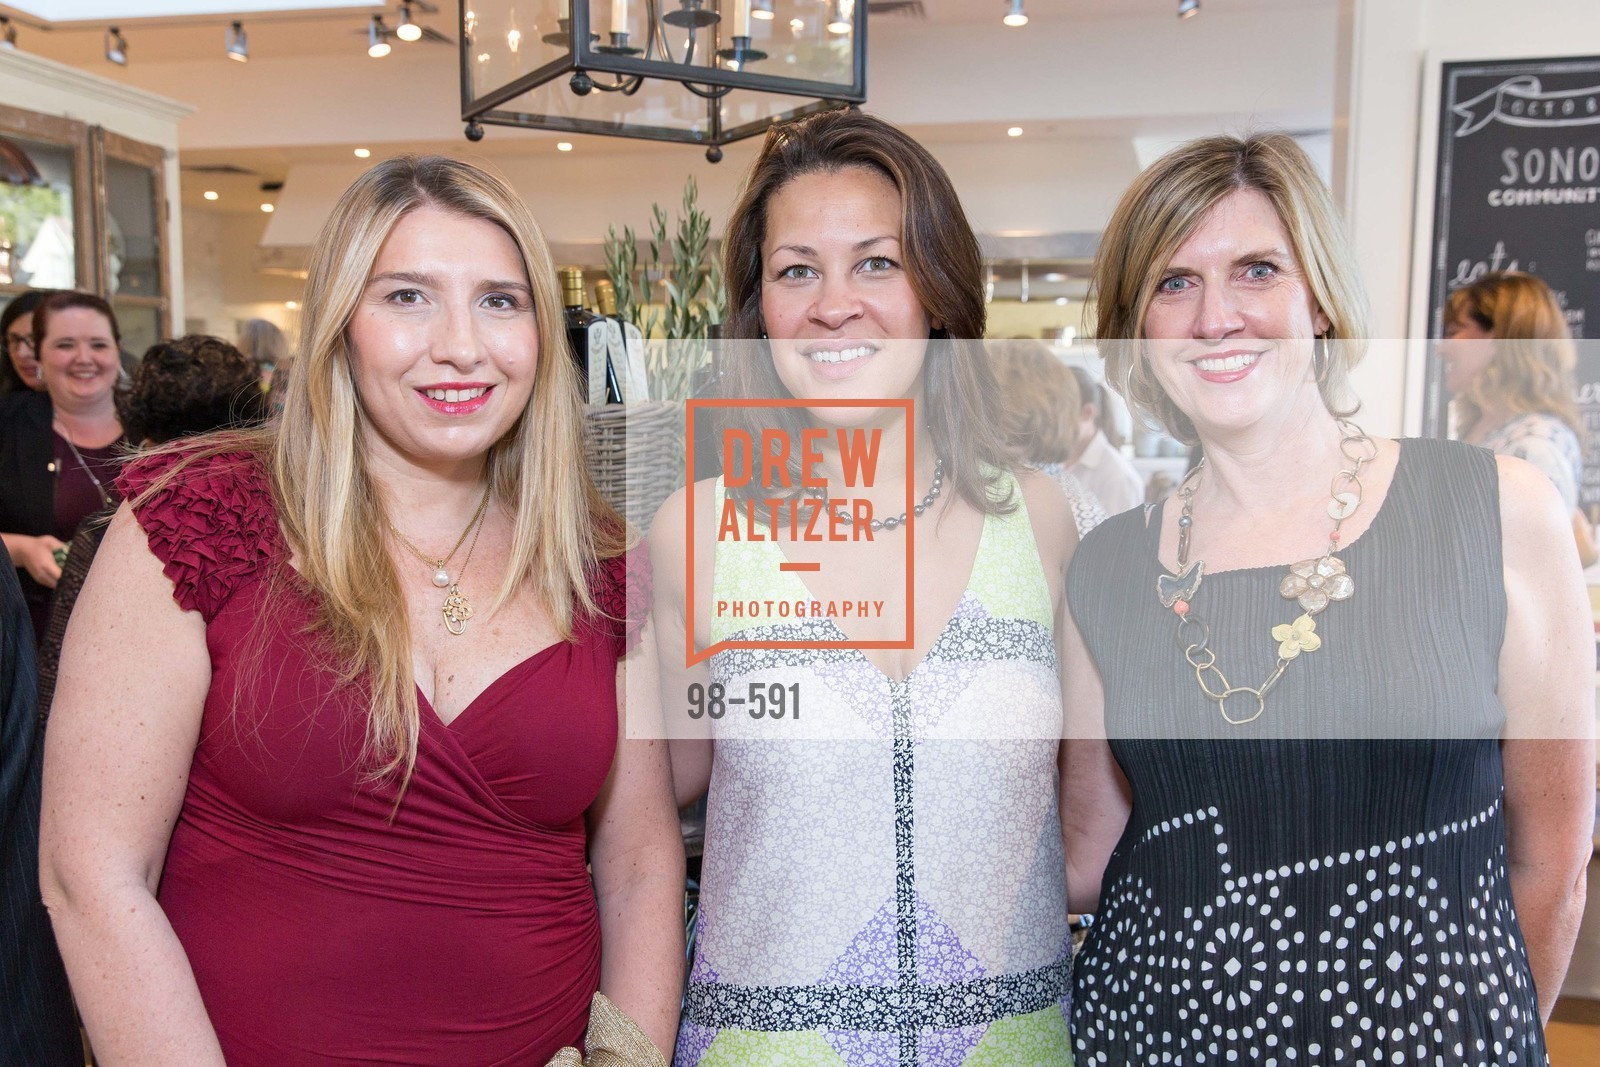 Sol Garay, Carrie Crespo-Dixon, Beth Tudor, CHUCK WILLIAMS Birthday Celebration, US, October 3rd, 2014,Drew Altizer, Drew Altizer Photography, full-service agency, private events, San Francisco photographer, photographer california